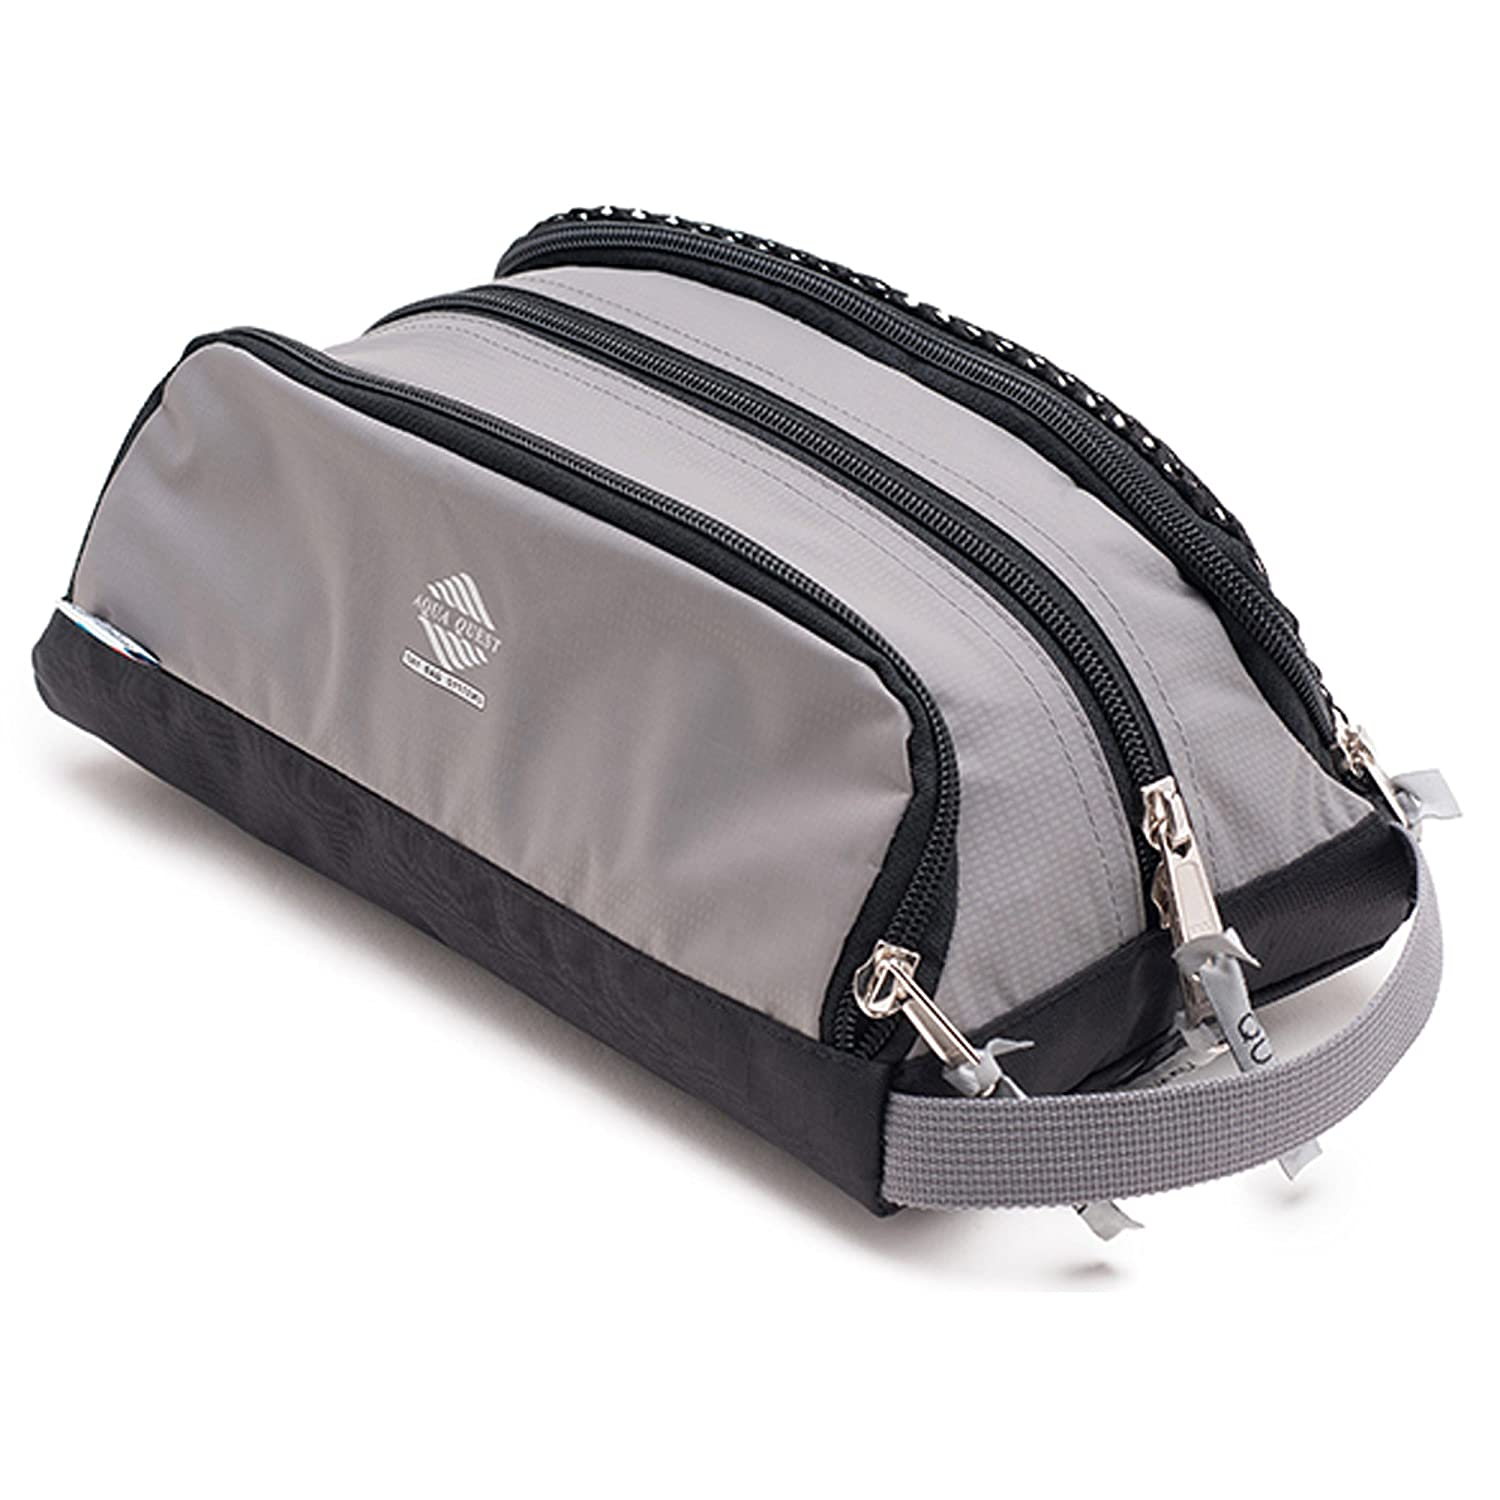 Aqua Quest Chameleon Gray Travel Bag Water Resistant Pouch